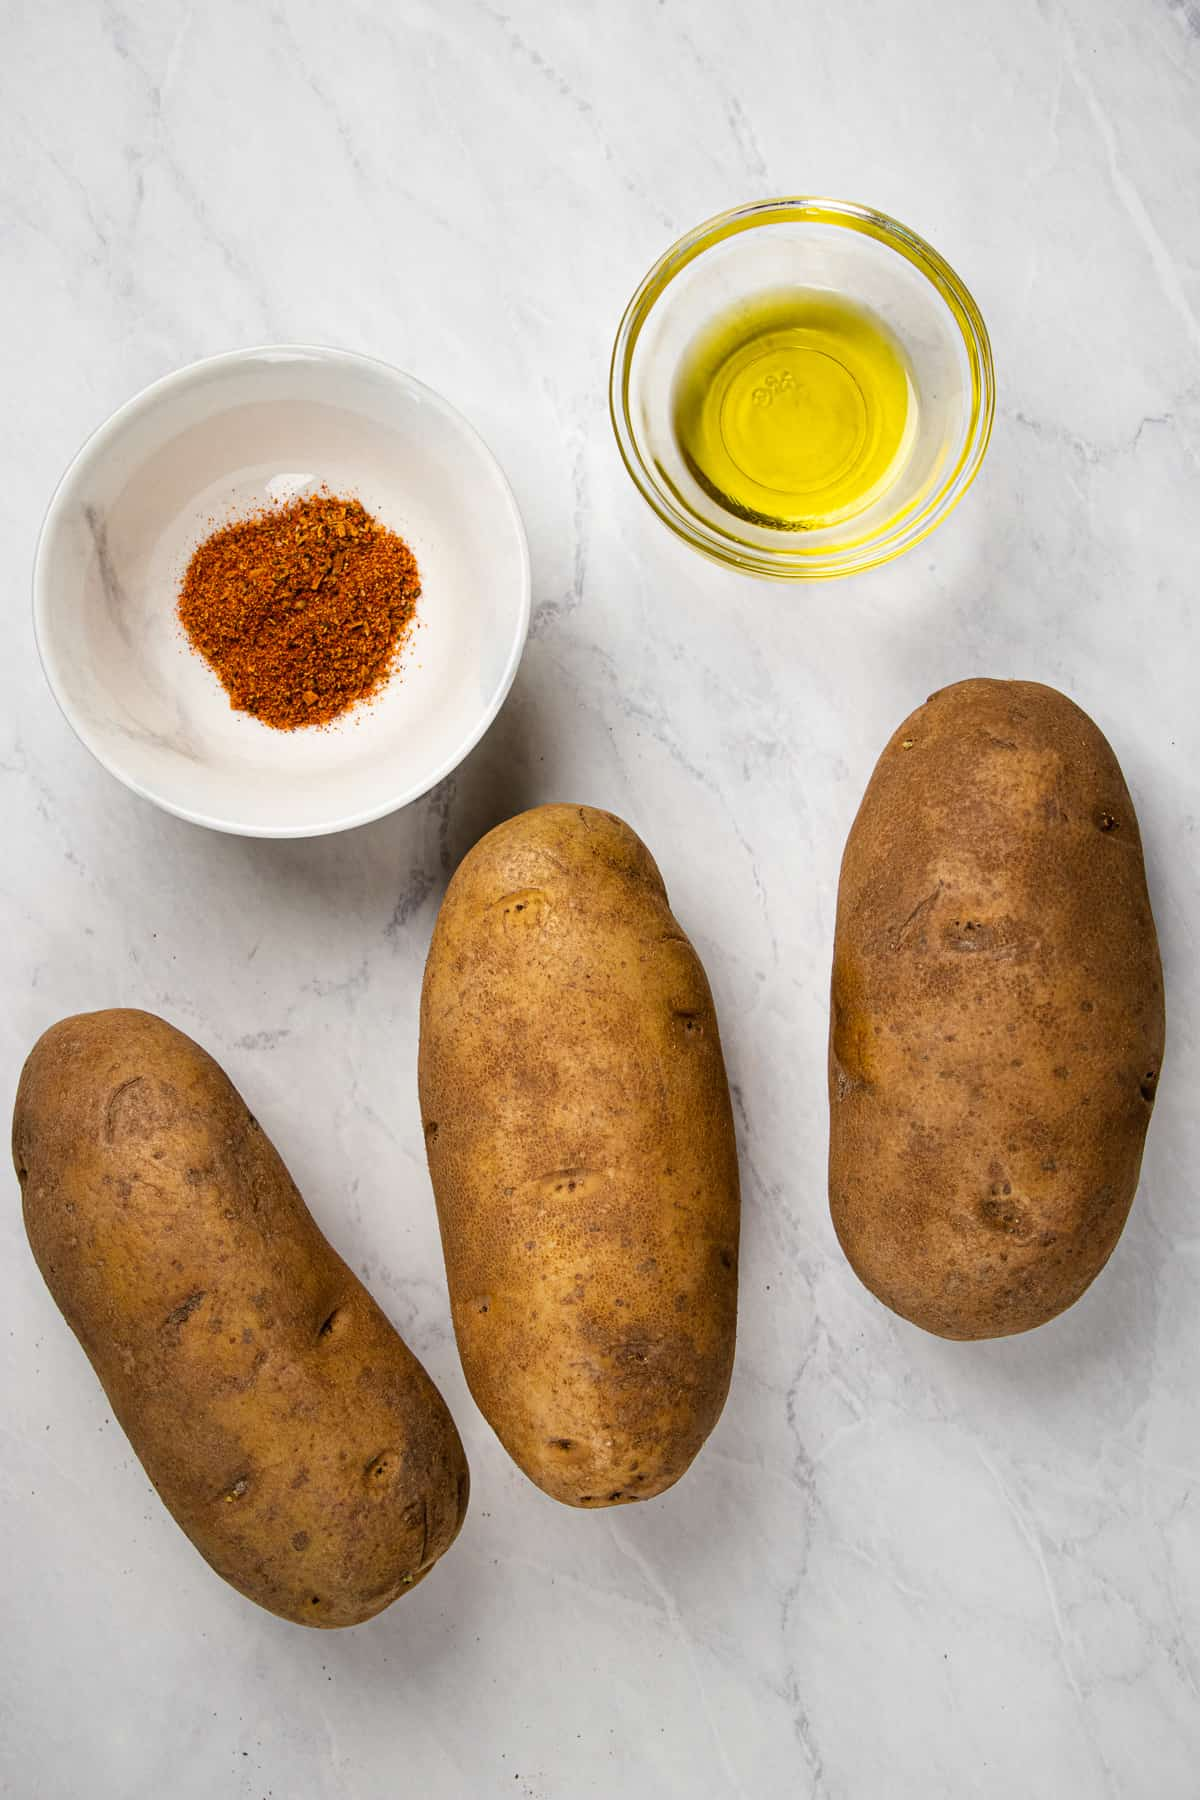 Ingredients for baked fries.